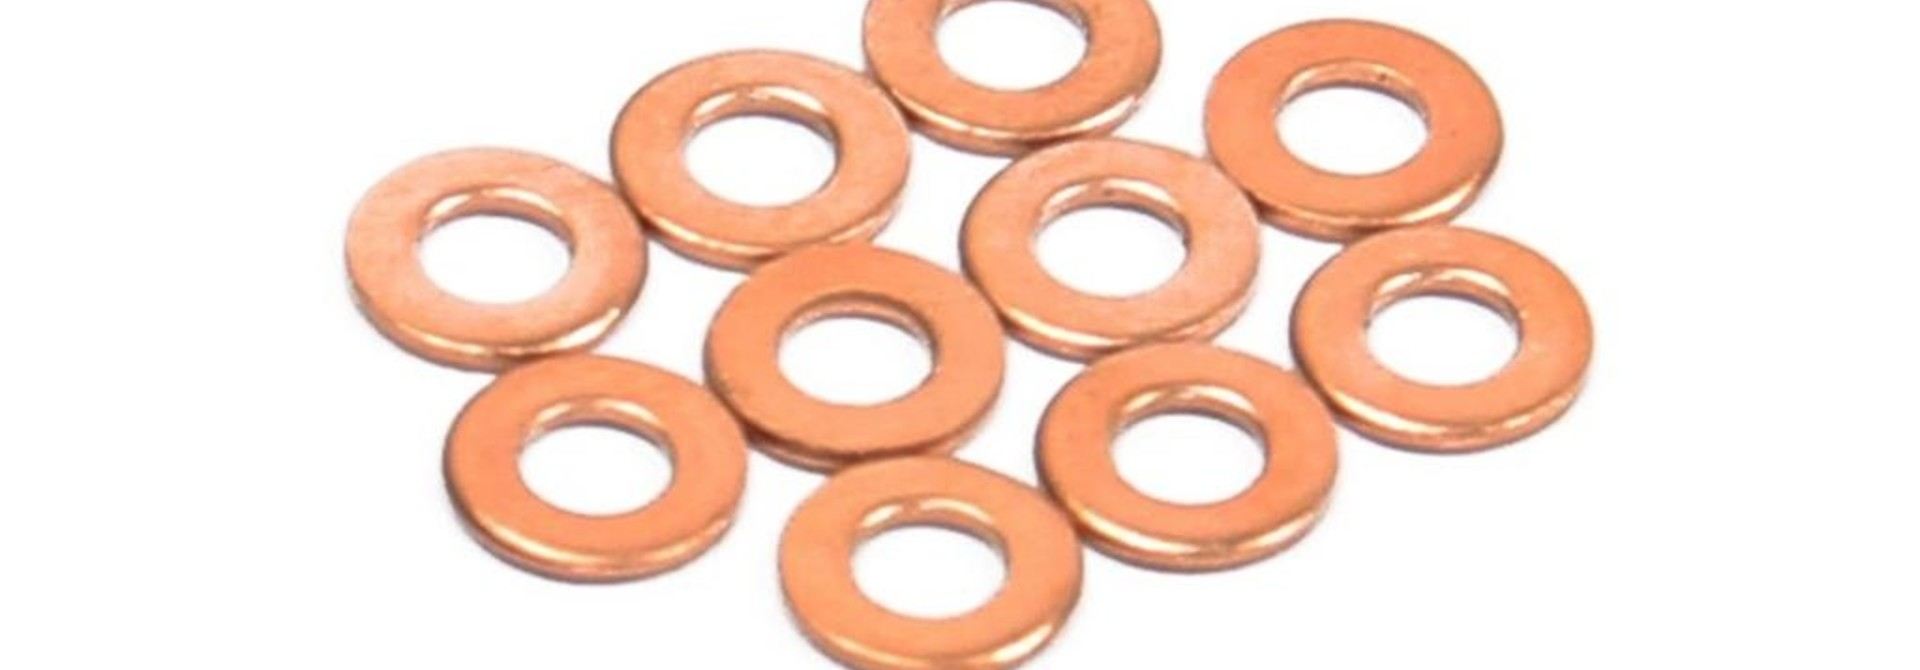 Hope Part Brake Copper Washer (Suit SS Braided And 5mm Black Hose)